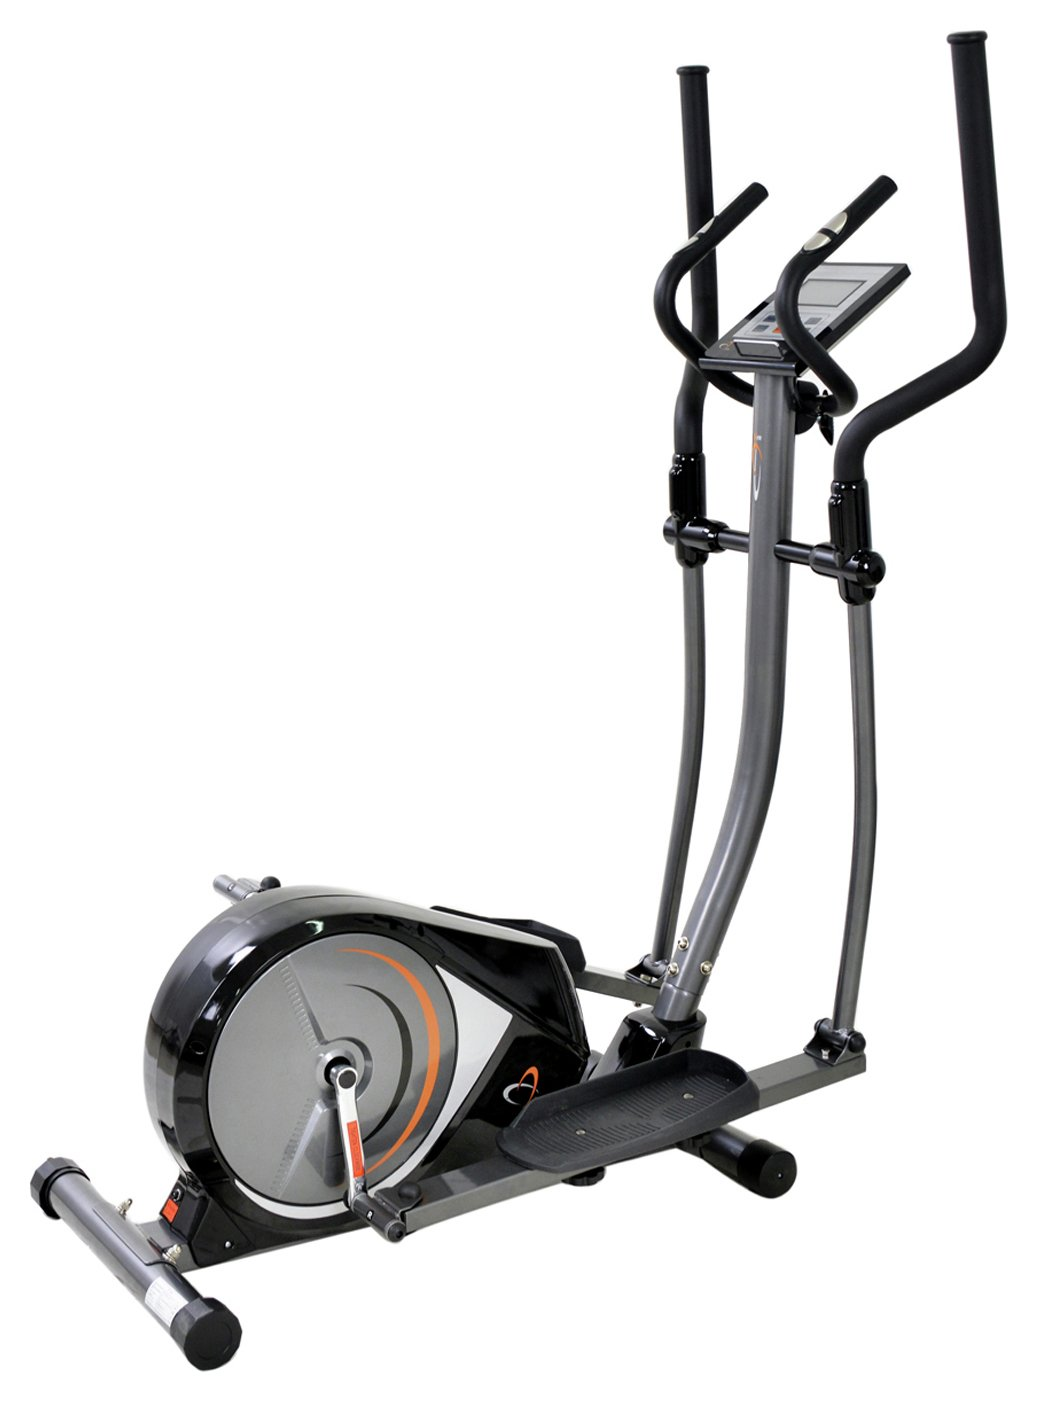 V-fit - EL071 Magnetic Elliptical Cross Trainer lowest price